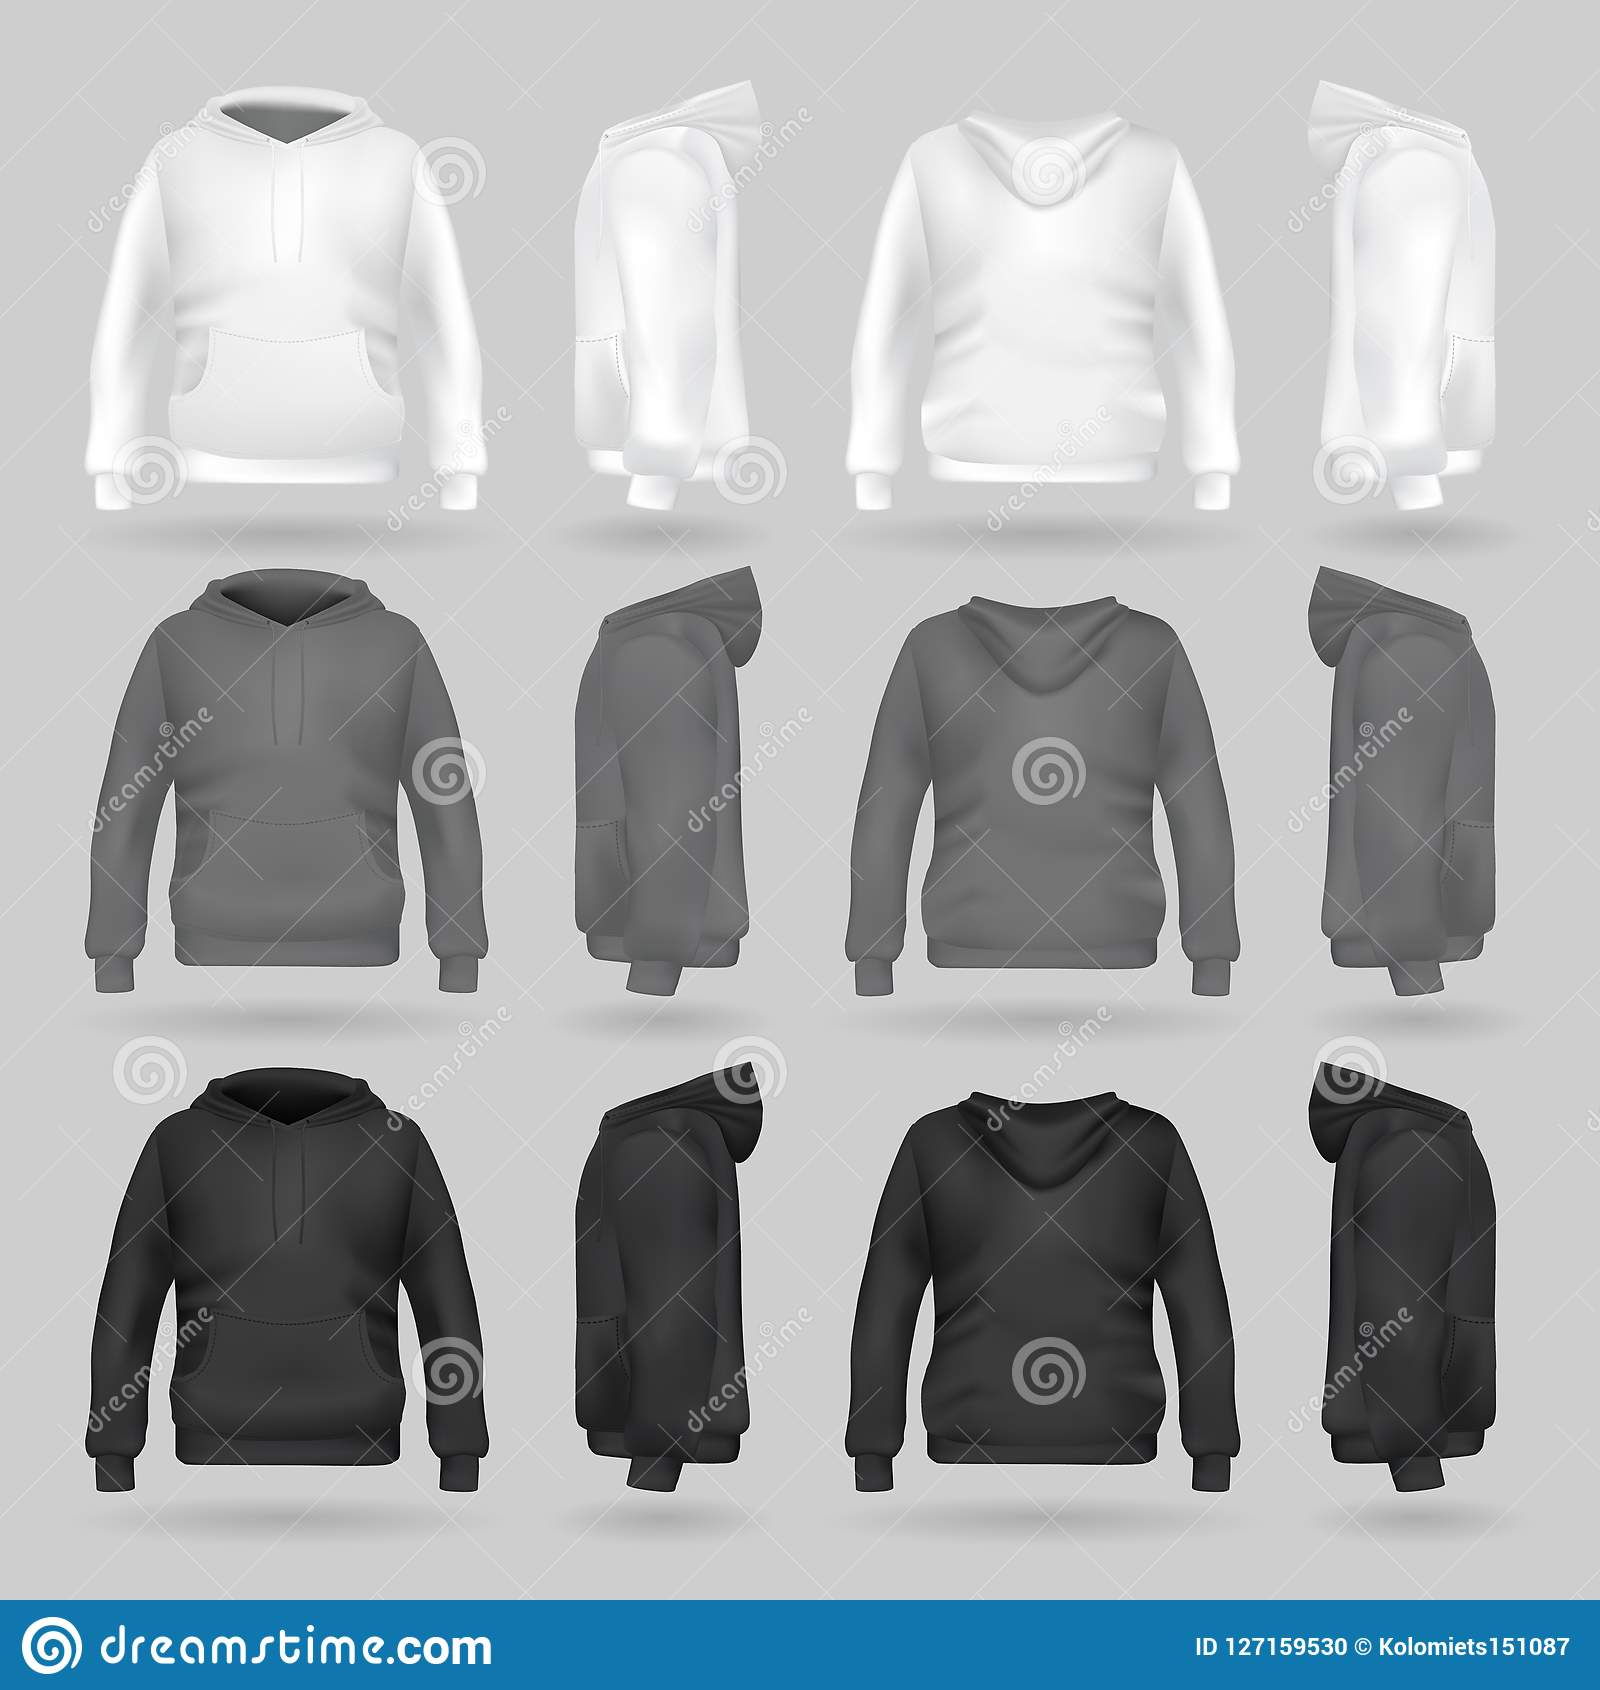 White Grey And Black Sweatshirt Hoodie Template In Four Dimensions Front Side Back View Realistic Gradient Mesh Vector Clothes For Sport Urban